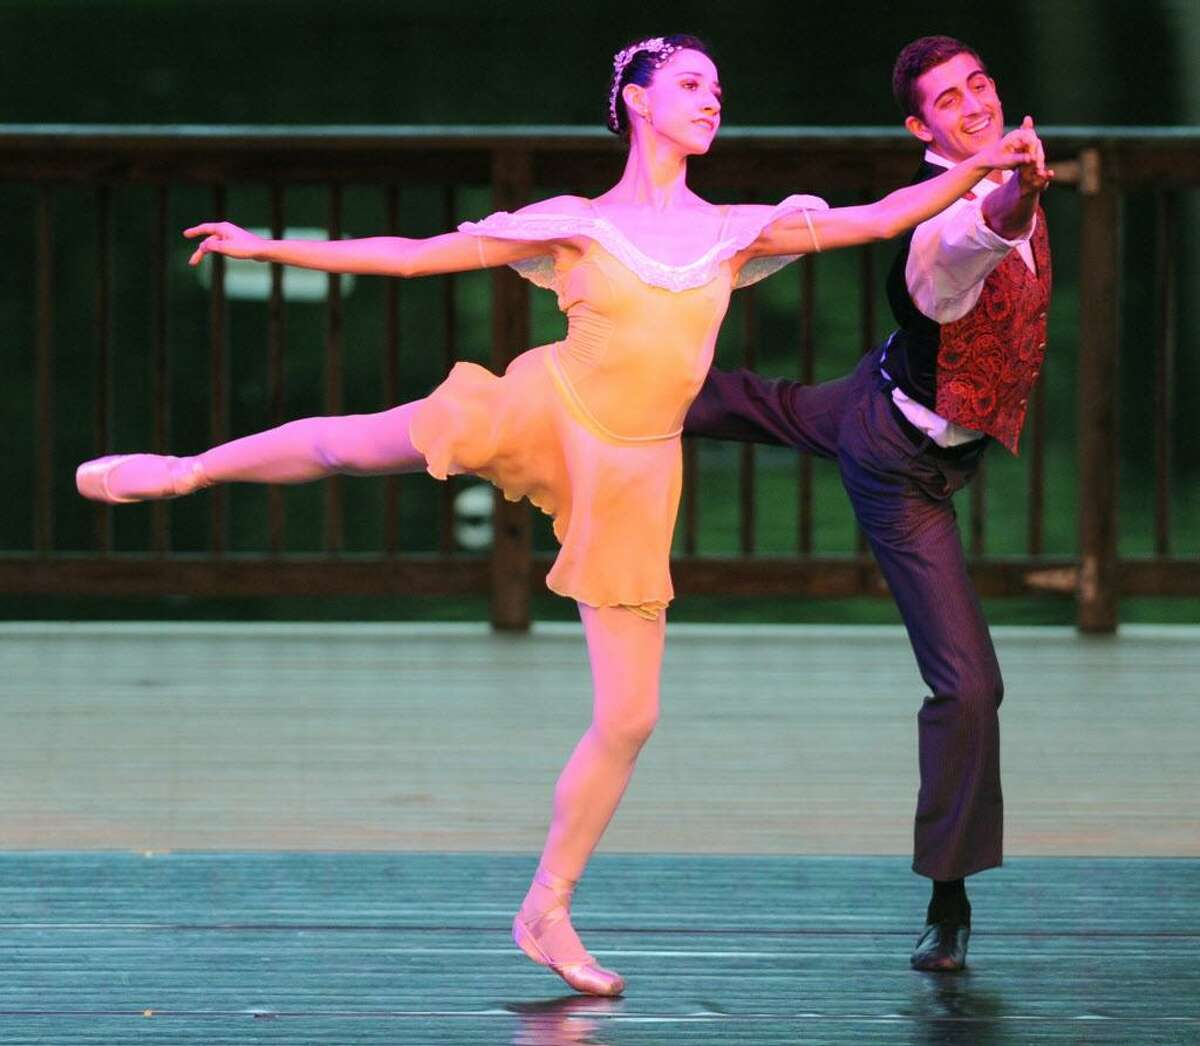 """Claire Mazza, left, and Morgan Stinnet dance during the dance routine """"Embraceable You"""" at Connecticut Ballet's Summer Dance Caravan Tour performance, """"Fabulous Duets for a Summer Evening,"""" at Ives Concert Park in Danbury, Conn. on Friday, July 26, 2013."""